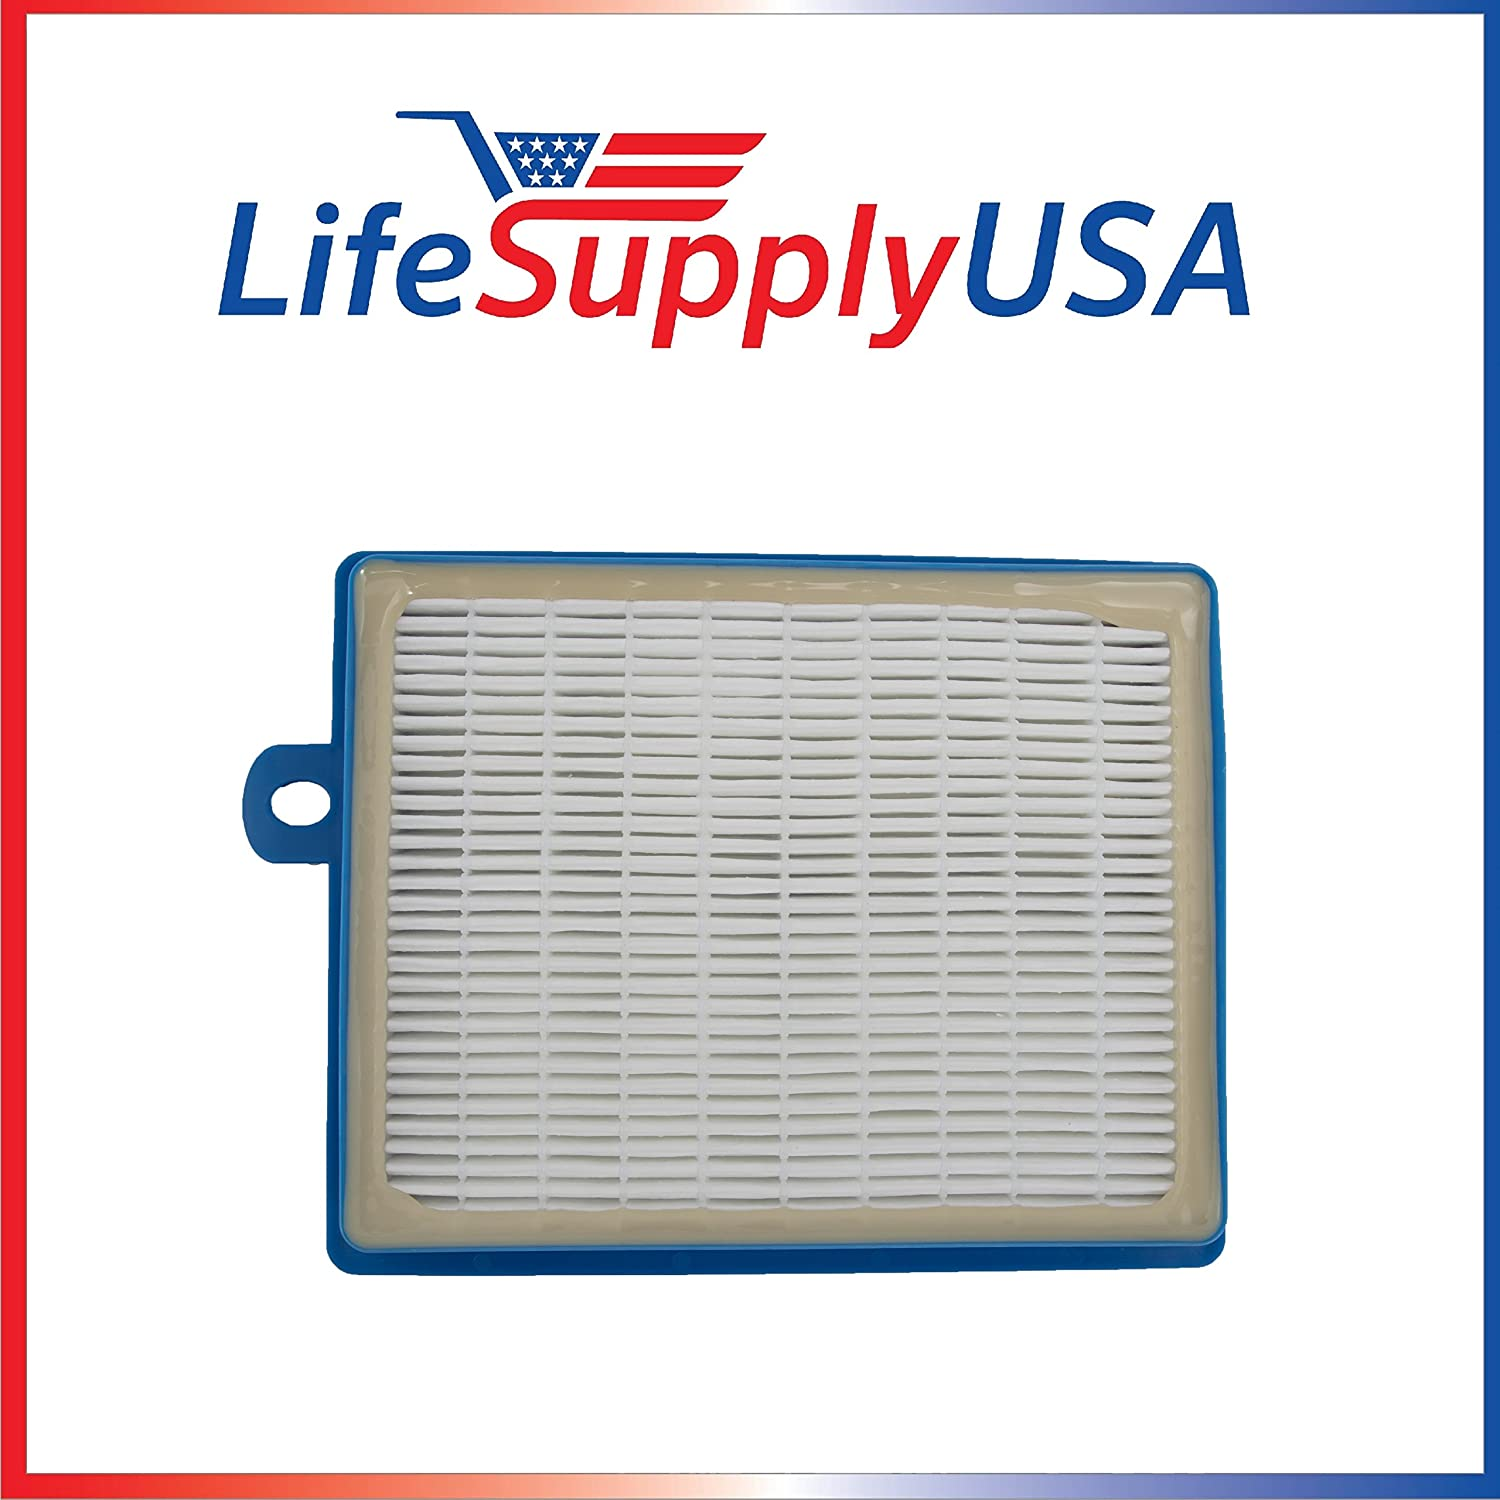 LifeSupplyUSA HEPA Filter Compatible with Electrolux Eureka H12 and oxygen Canister EL-6985 39938-8